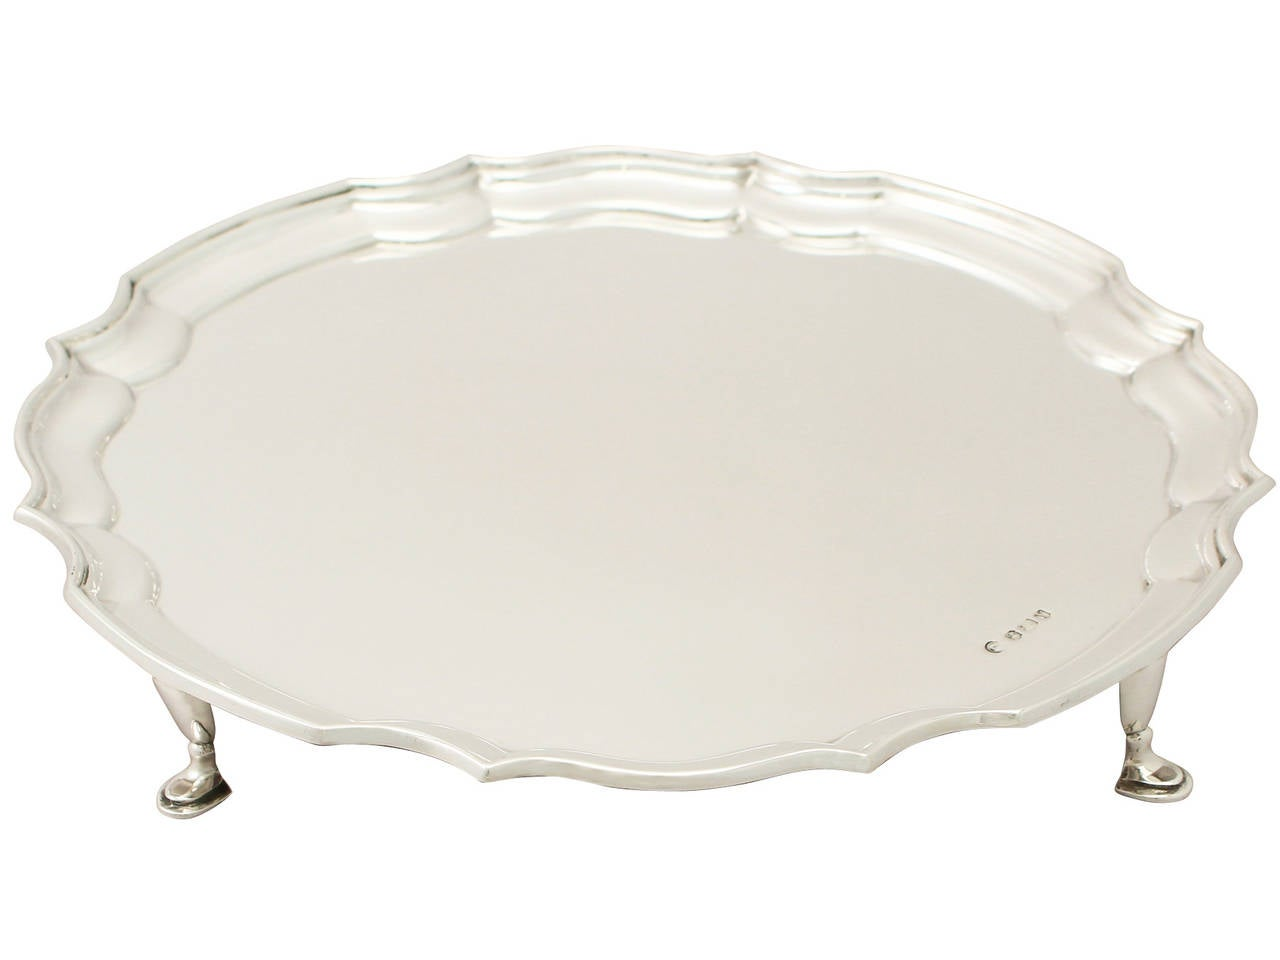 A fine and impressive vintage Elizabeth II English sterling silver salver, an addition to our silver dining collection.